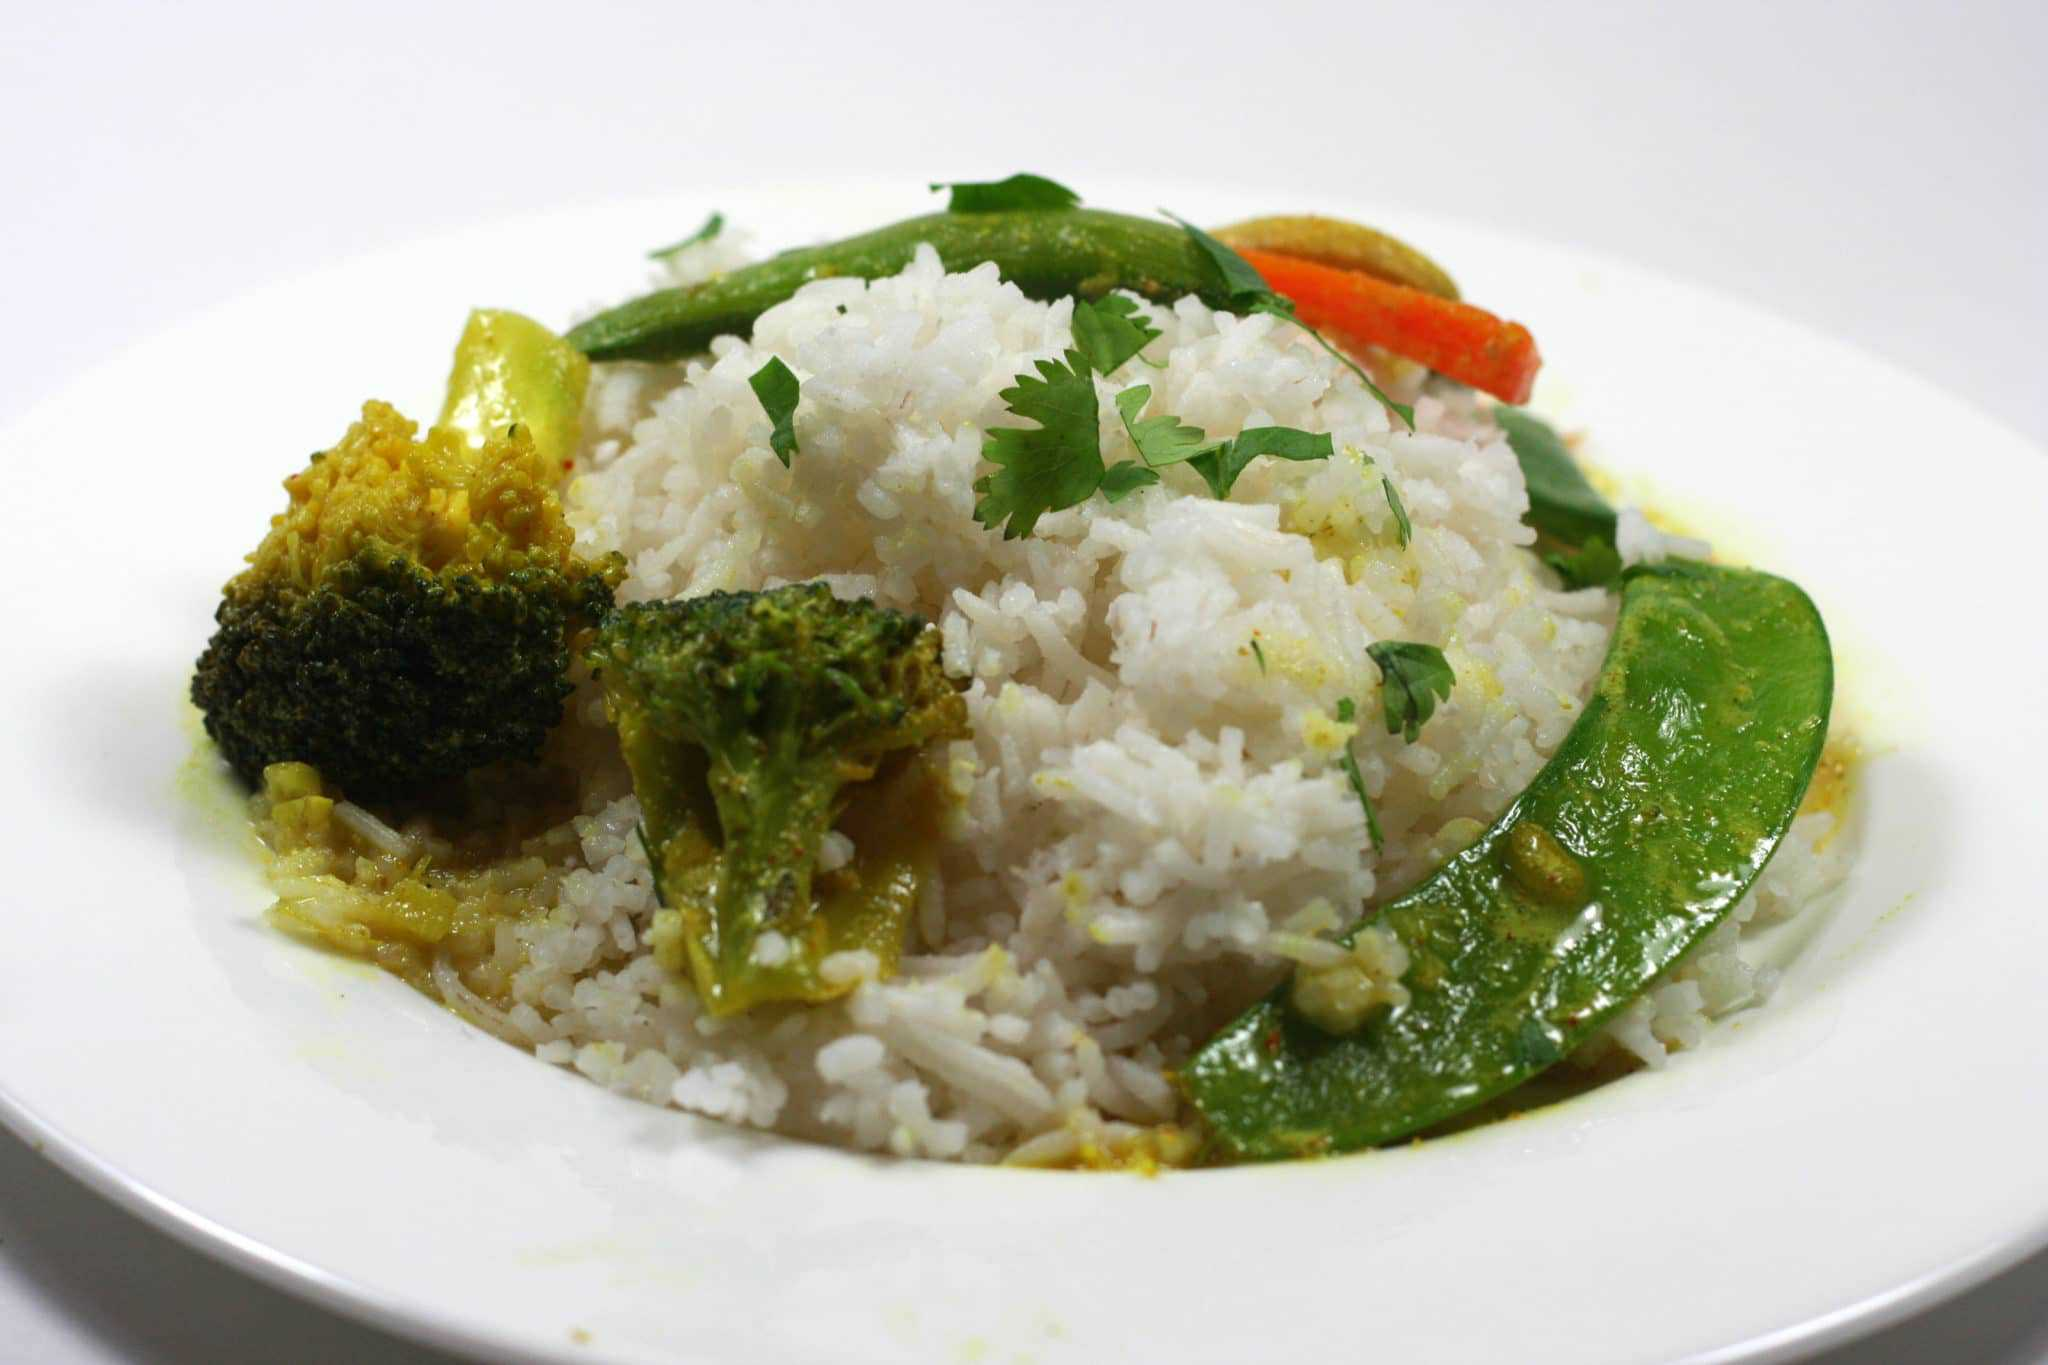 Coconut curry rice and vegetables